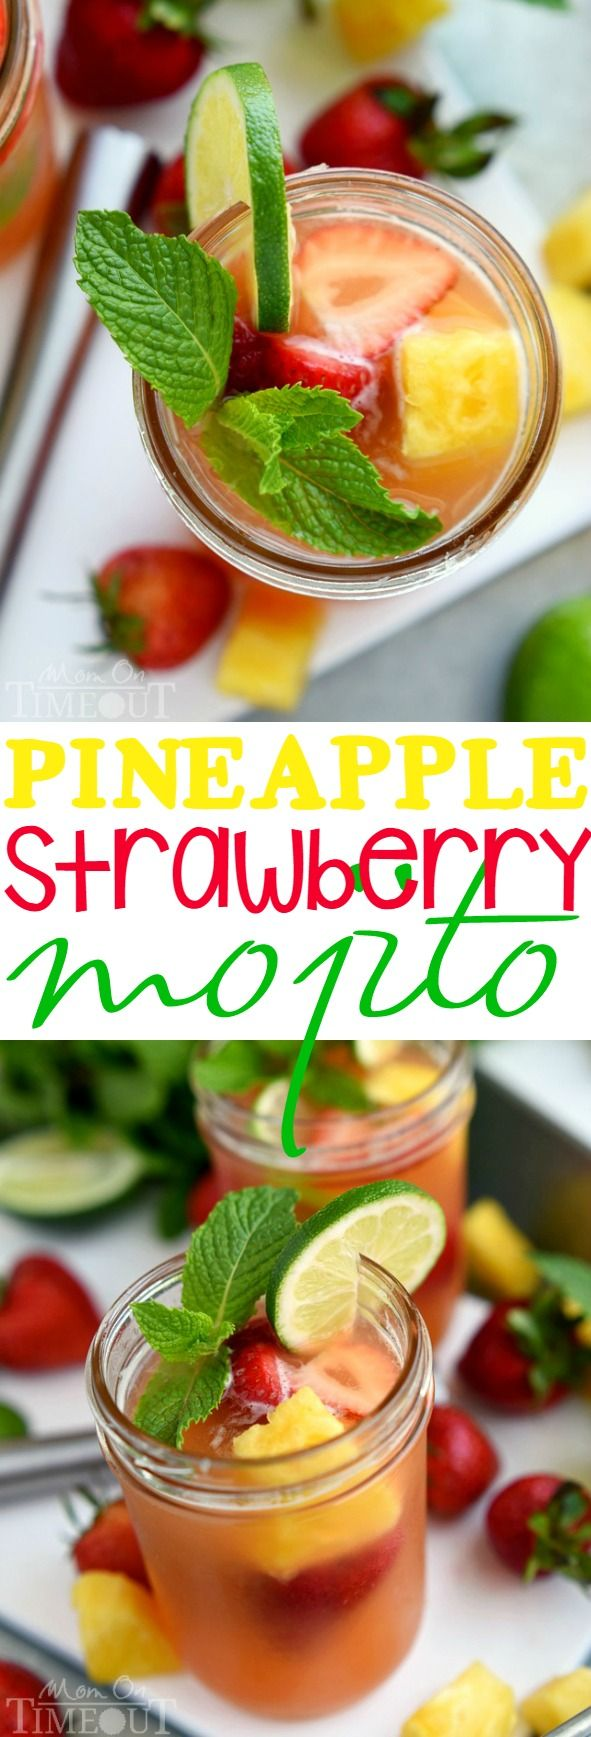 Perfectly cool, sweet, and SO refreshing, this fruit-infused Pineapple Strawberry Mojito cocktail has it all! (Can be made virgin!)   MomOnTimeout.com